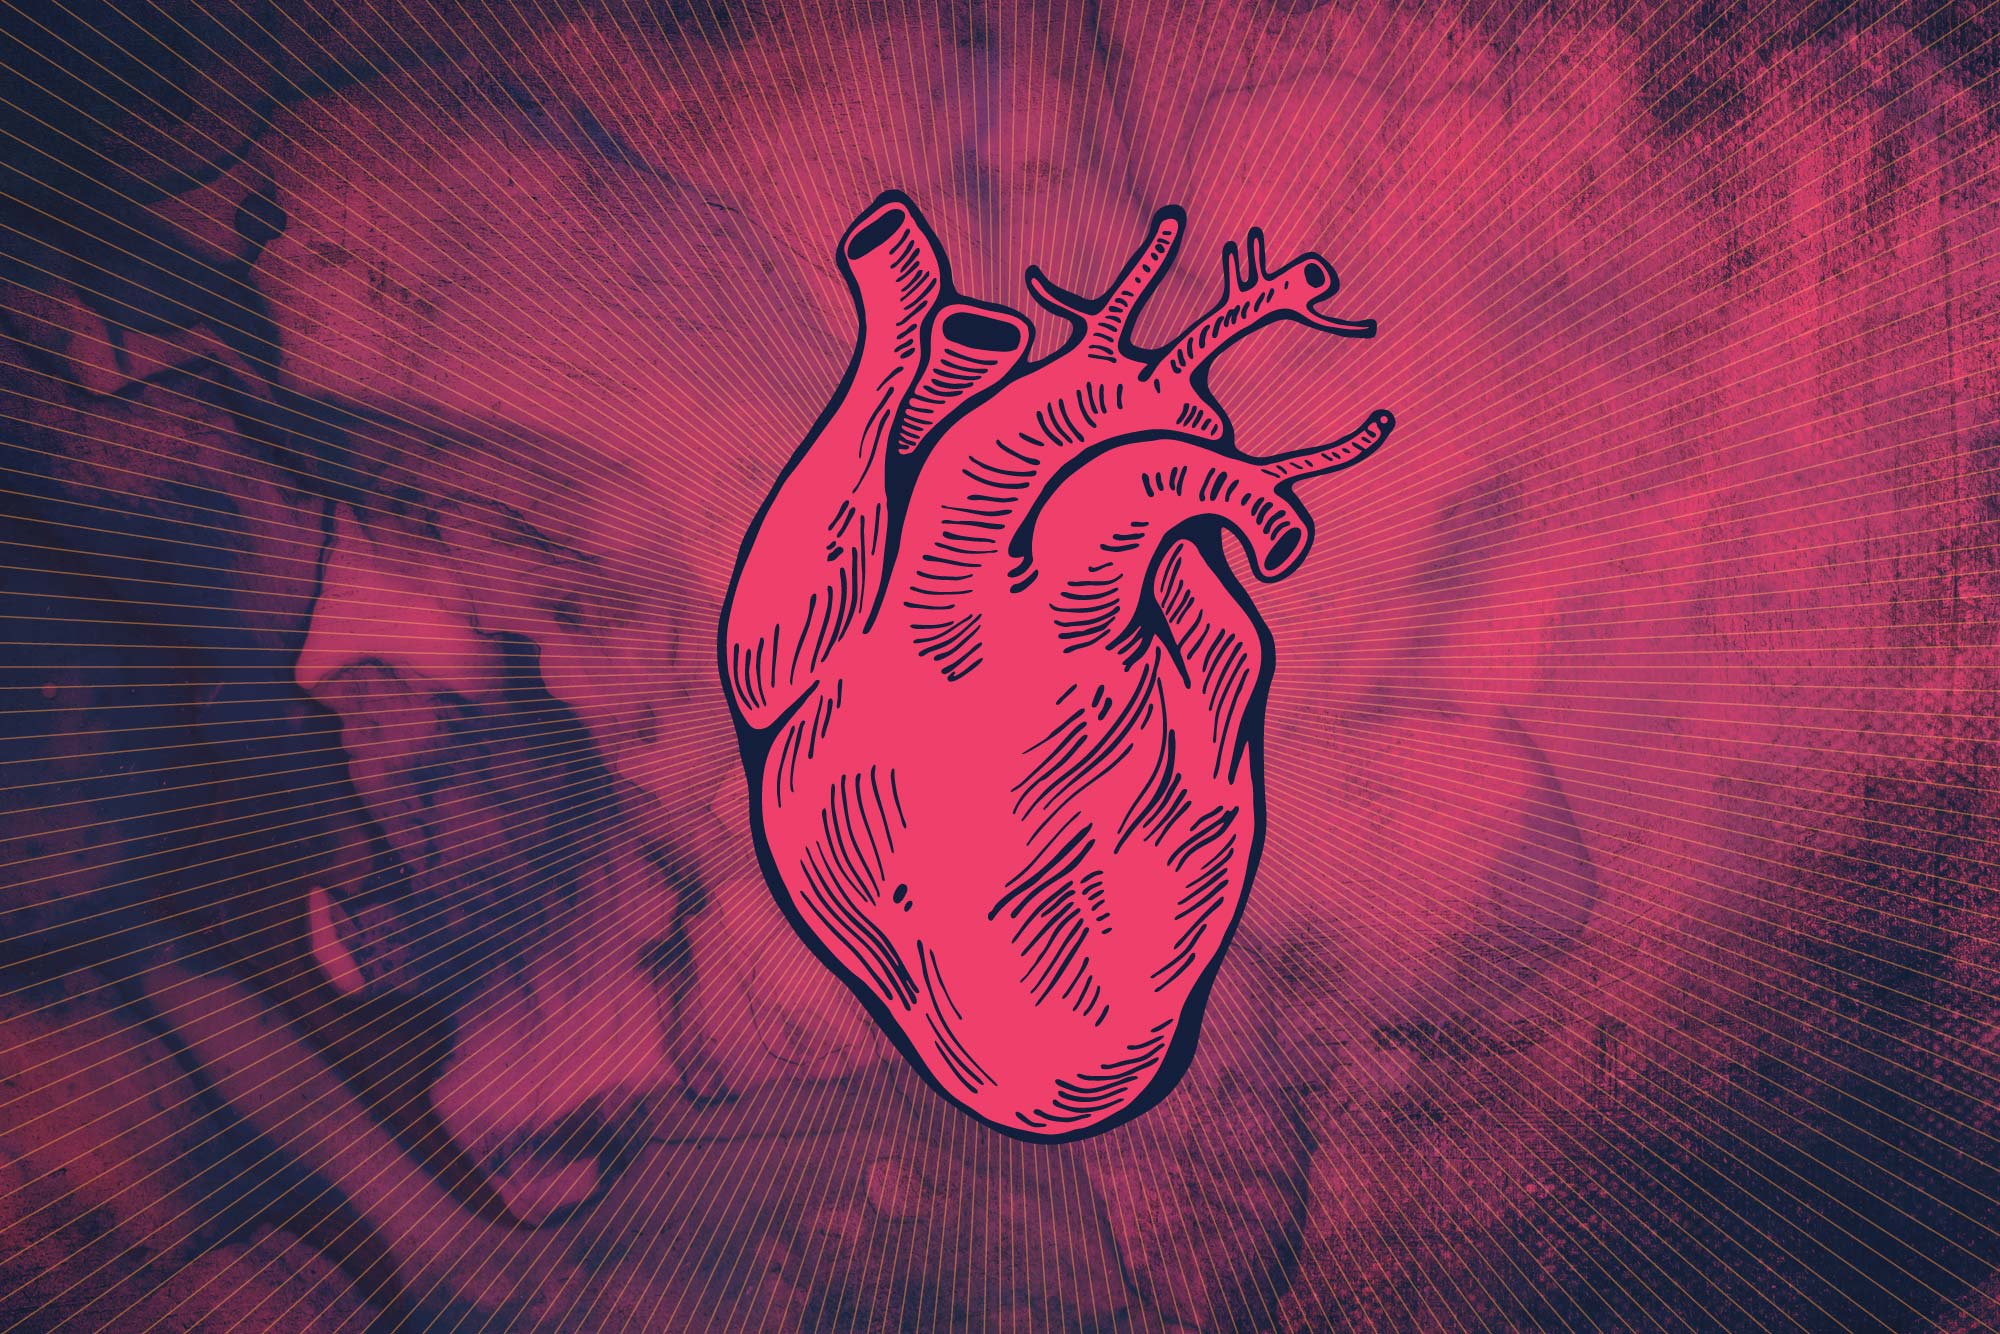 Hypertrophic cardiomyopathy can present at any age, and it is the most common cause of sudden cardiac death in young athletes.